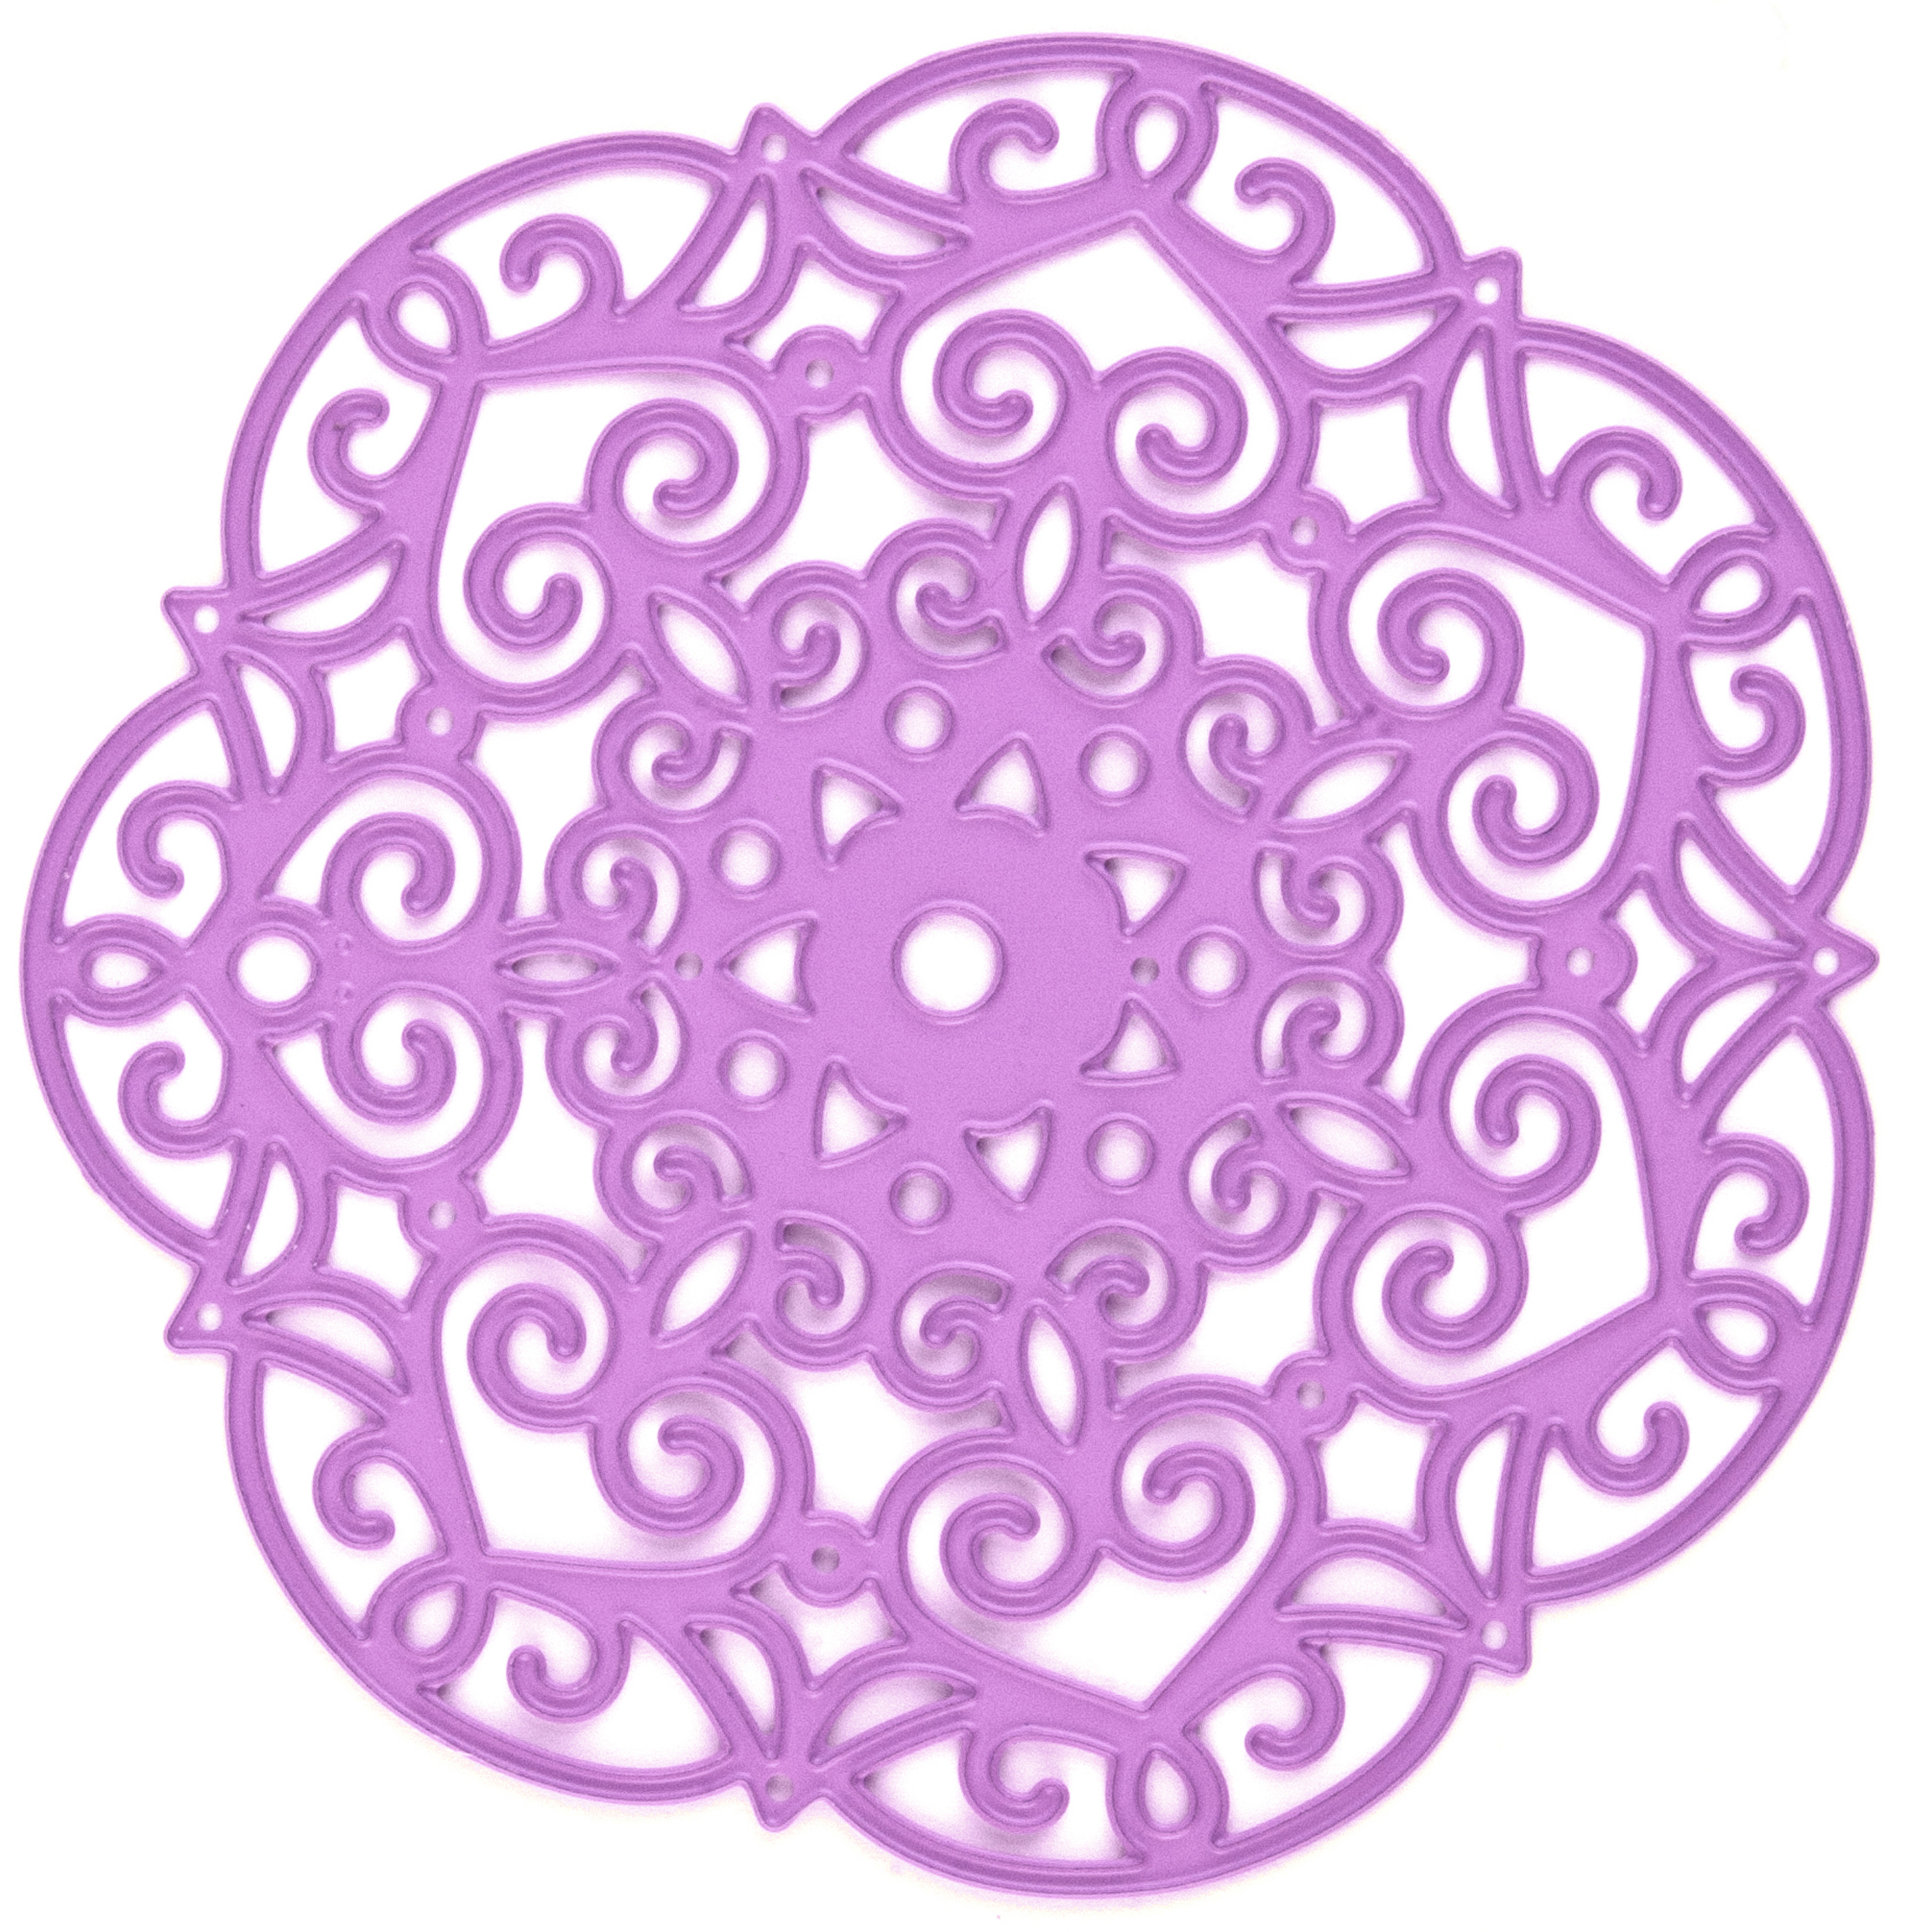 Prima Marketing Purple Metal Die, Embroidery Doily